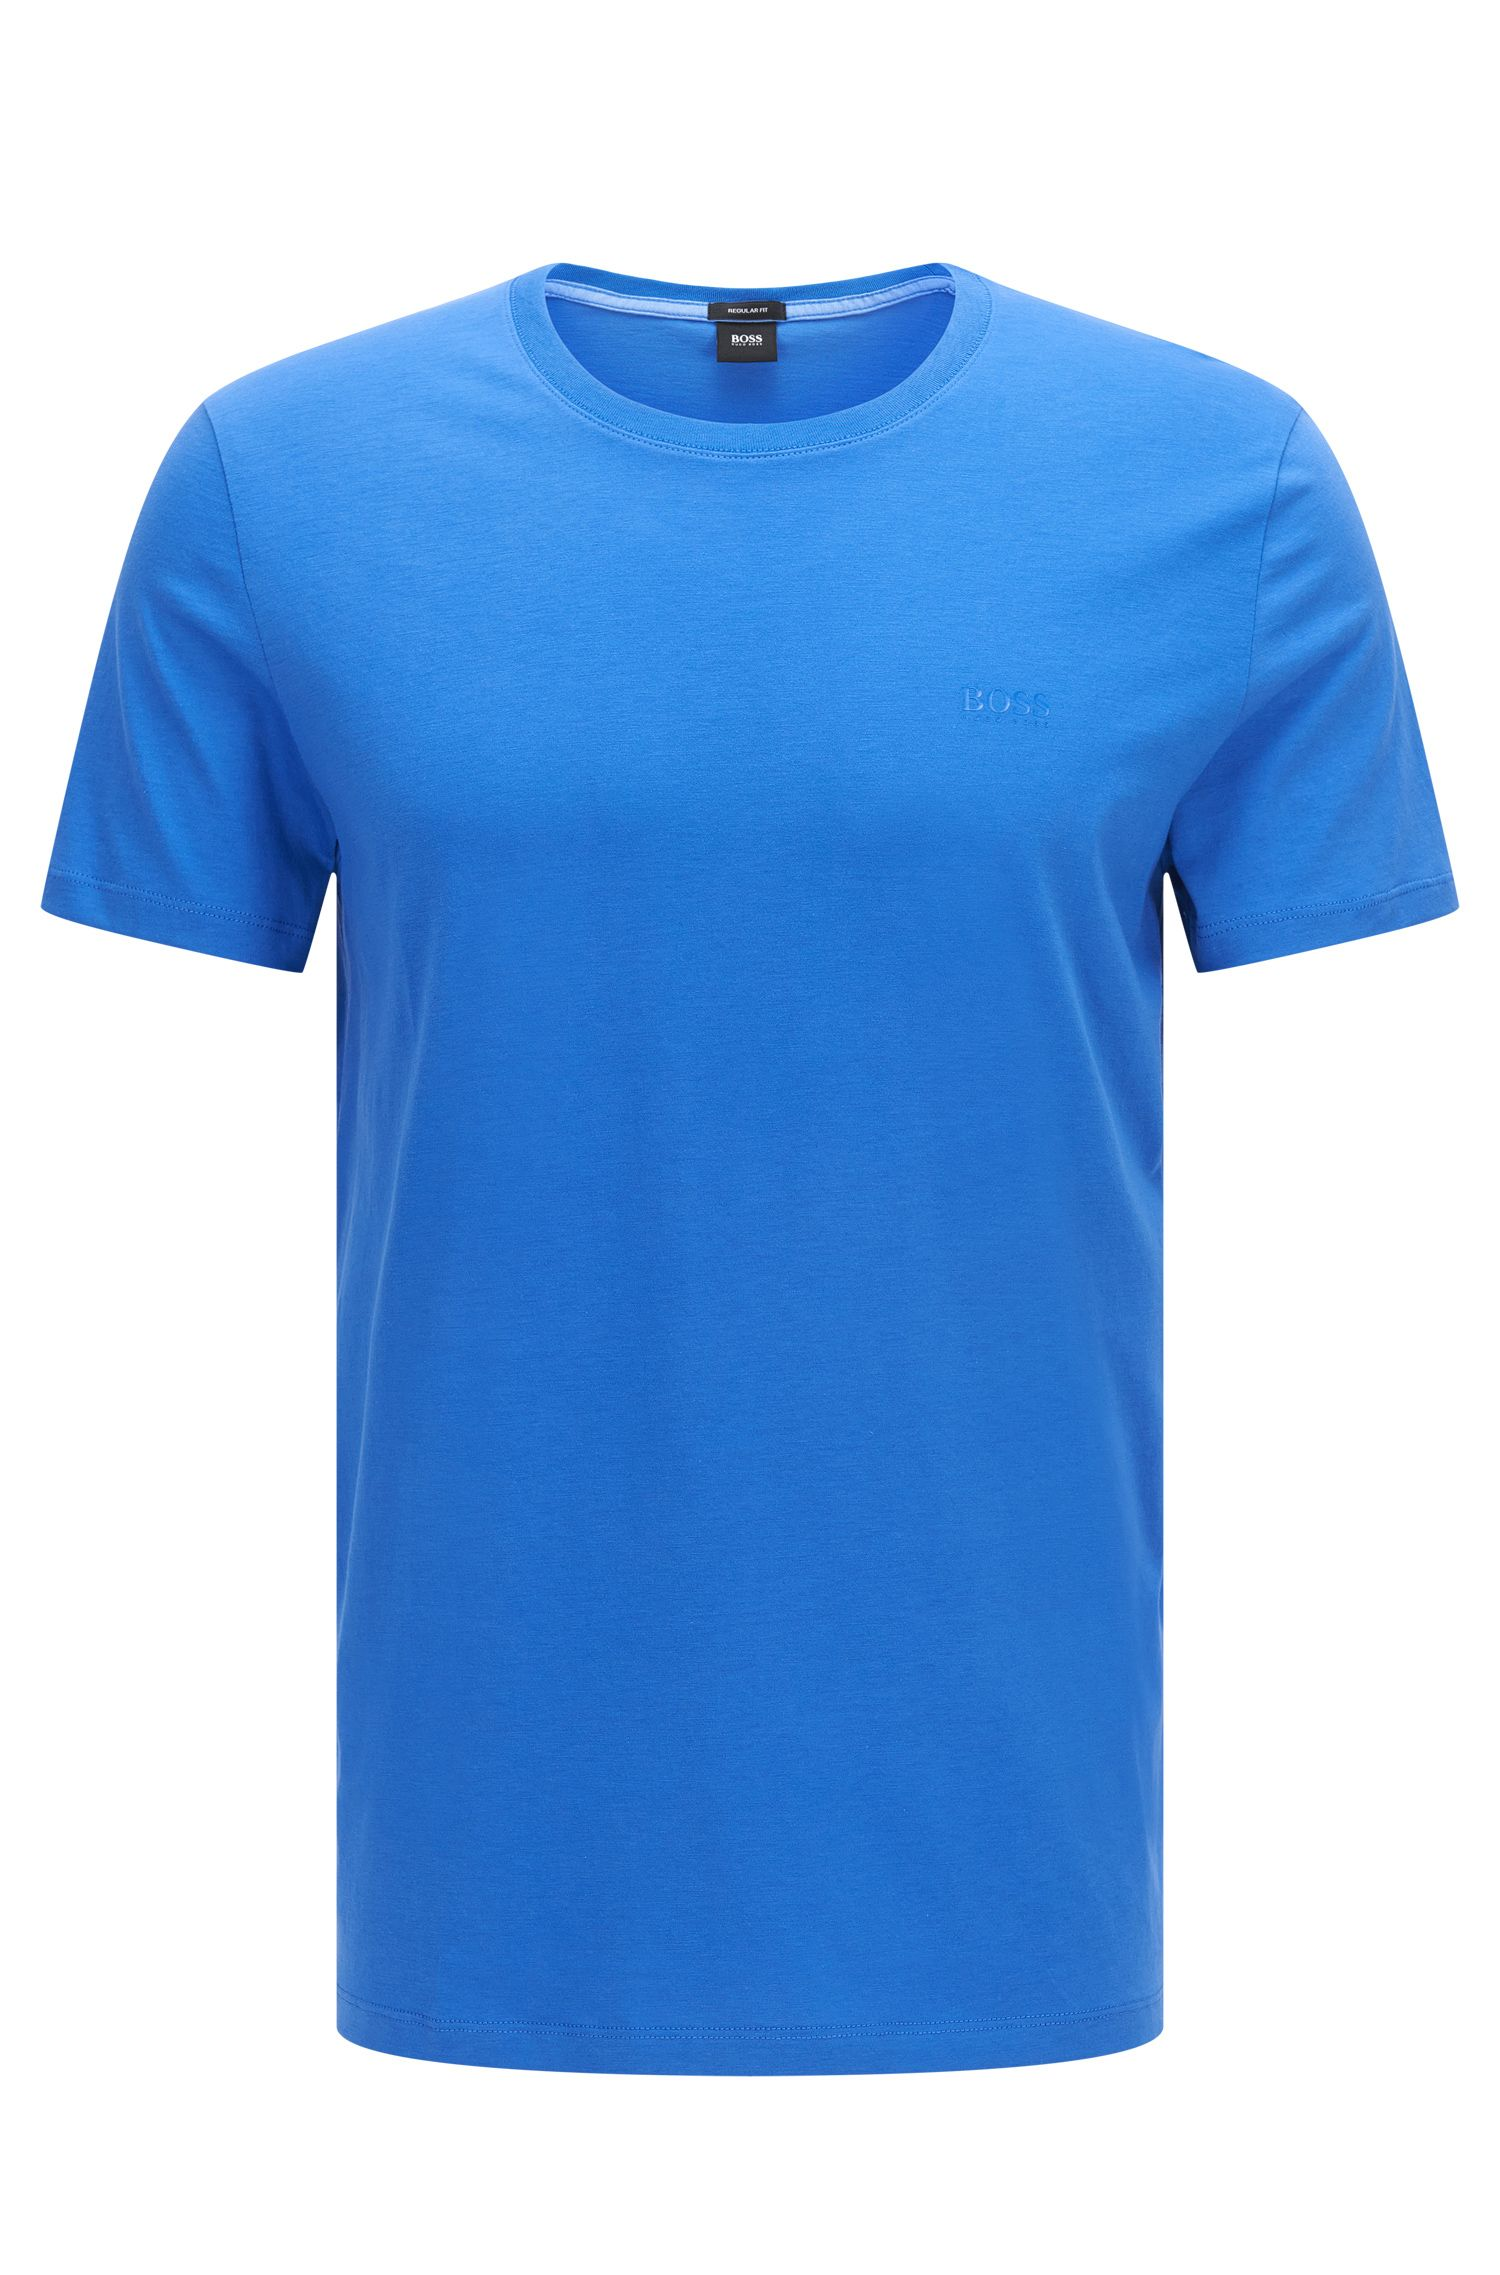 T-shirt Regular Fit en coton doux, Bleu